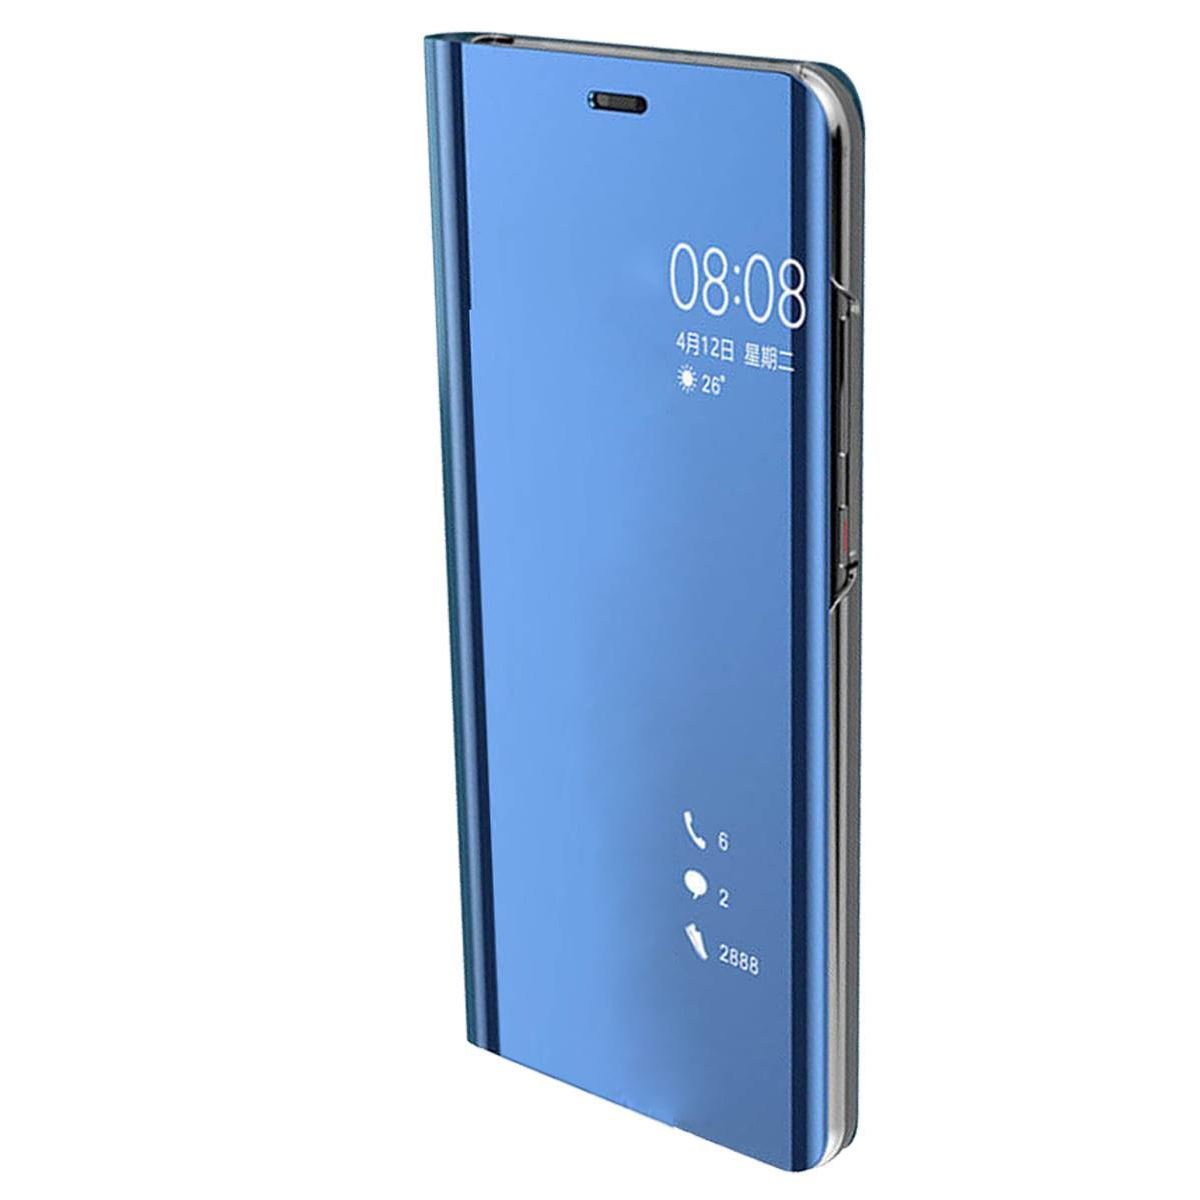 Huawei P30 Pro Case Smart View Mirror Flip Stand Cover - Blue